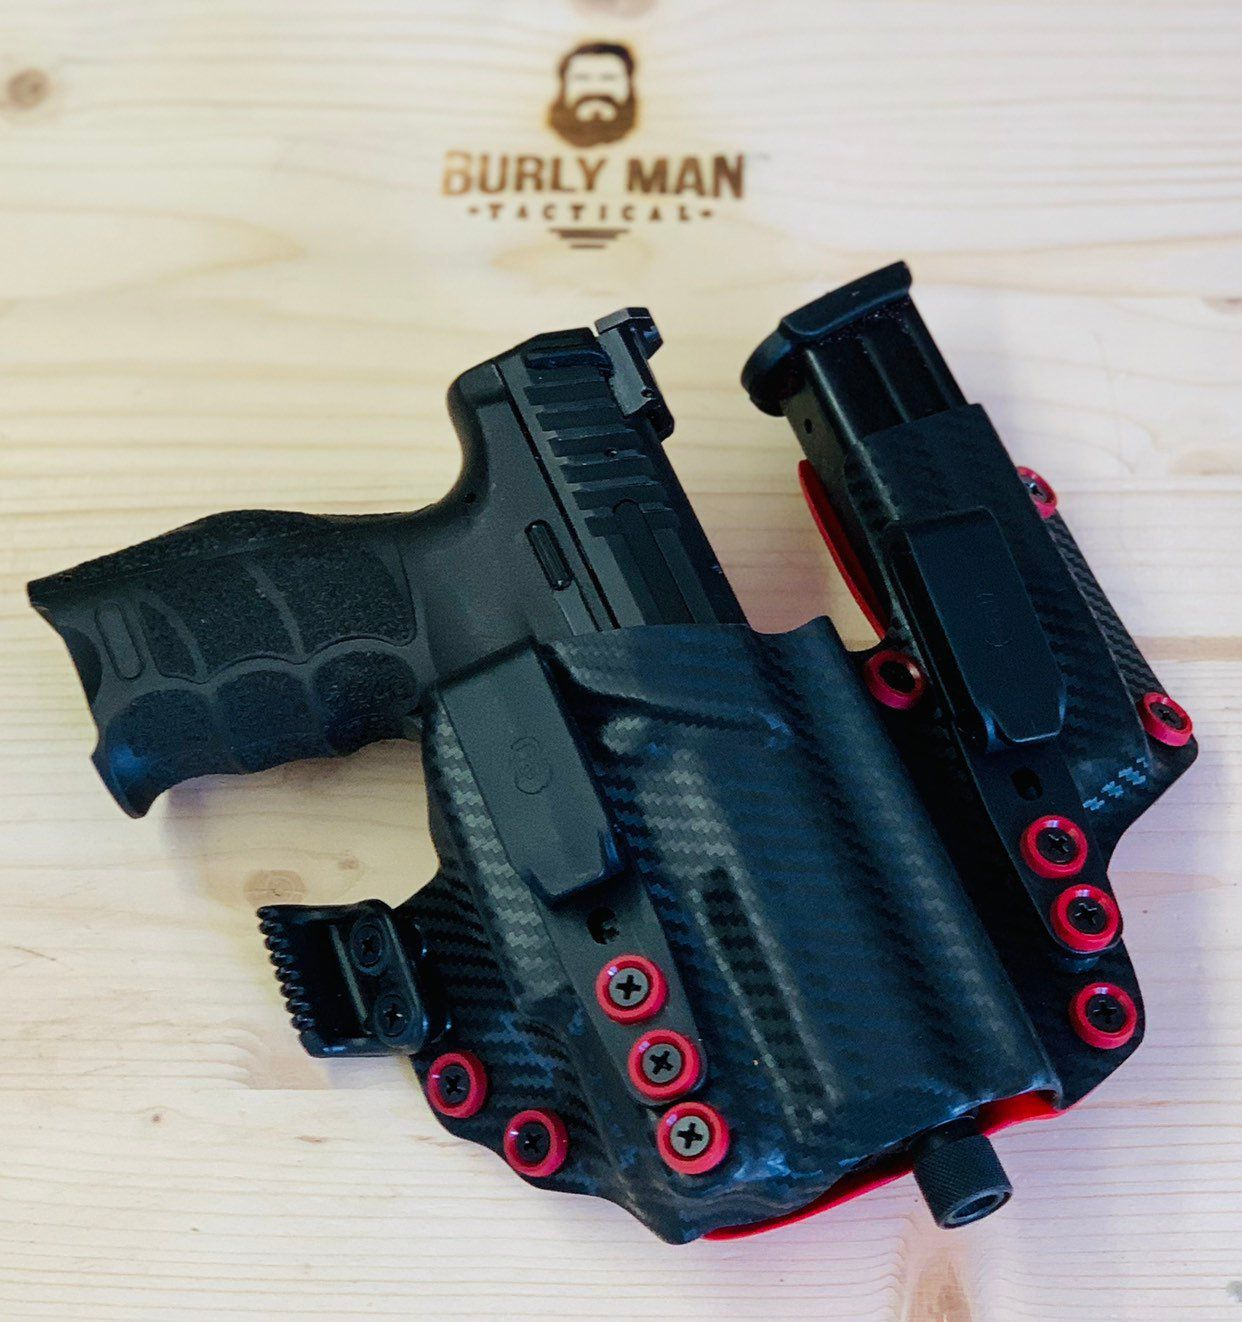 VP9 H&K Tactical with Olight PL Mini Heckler and Koch VP-9